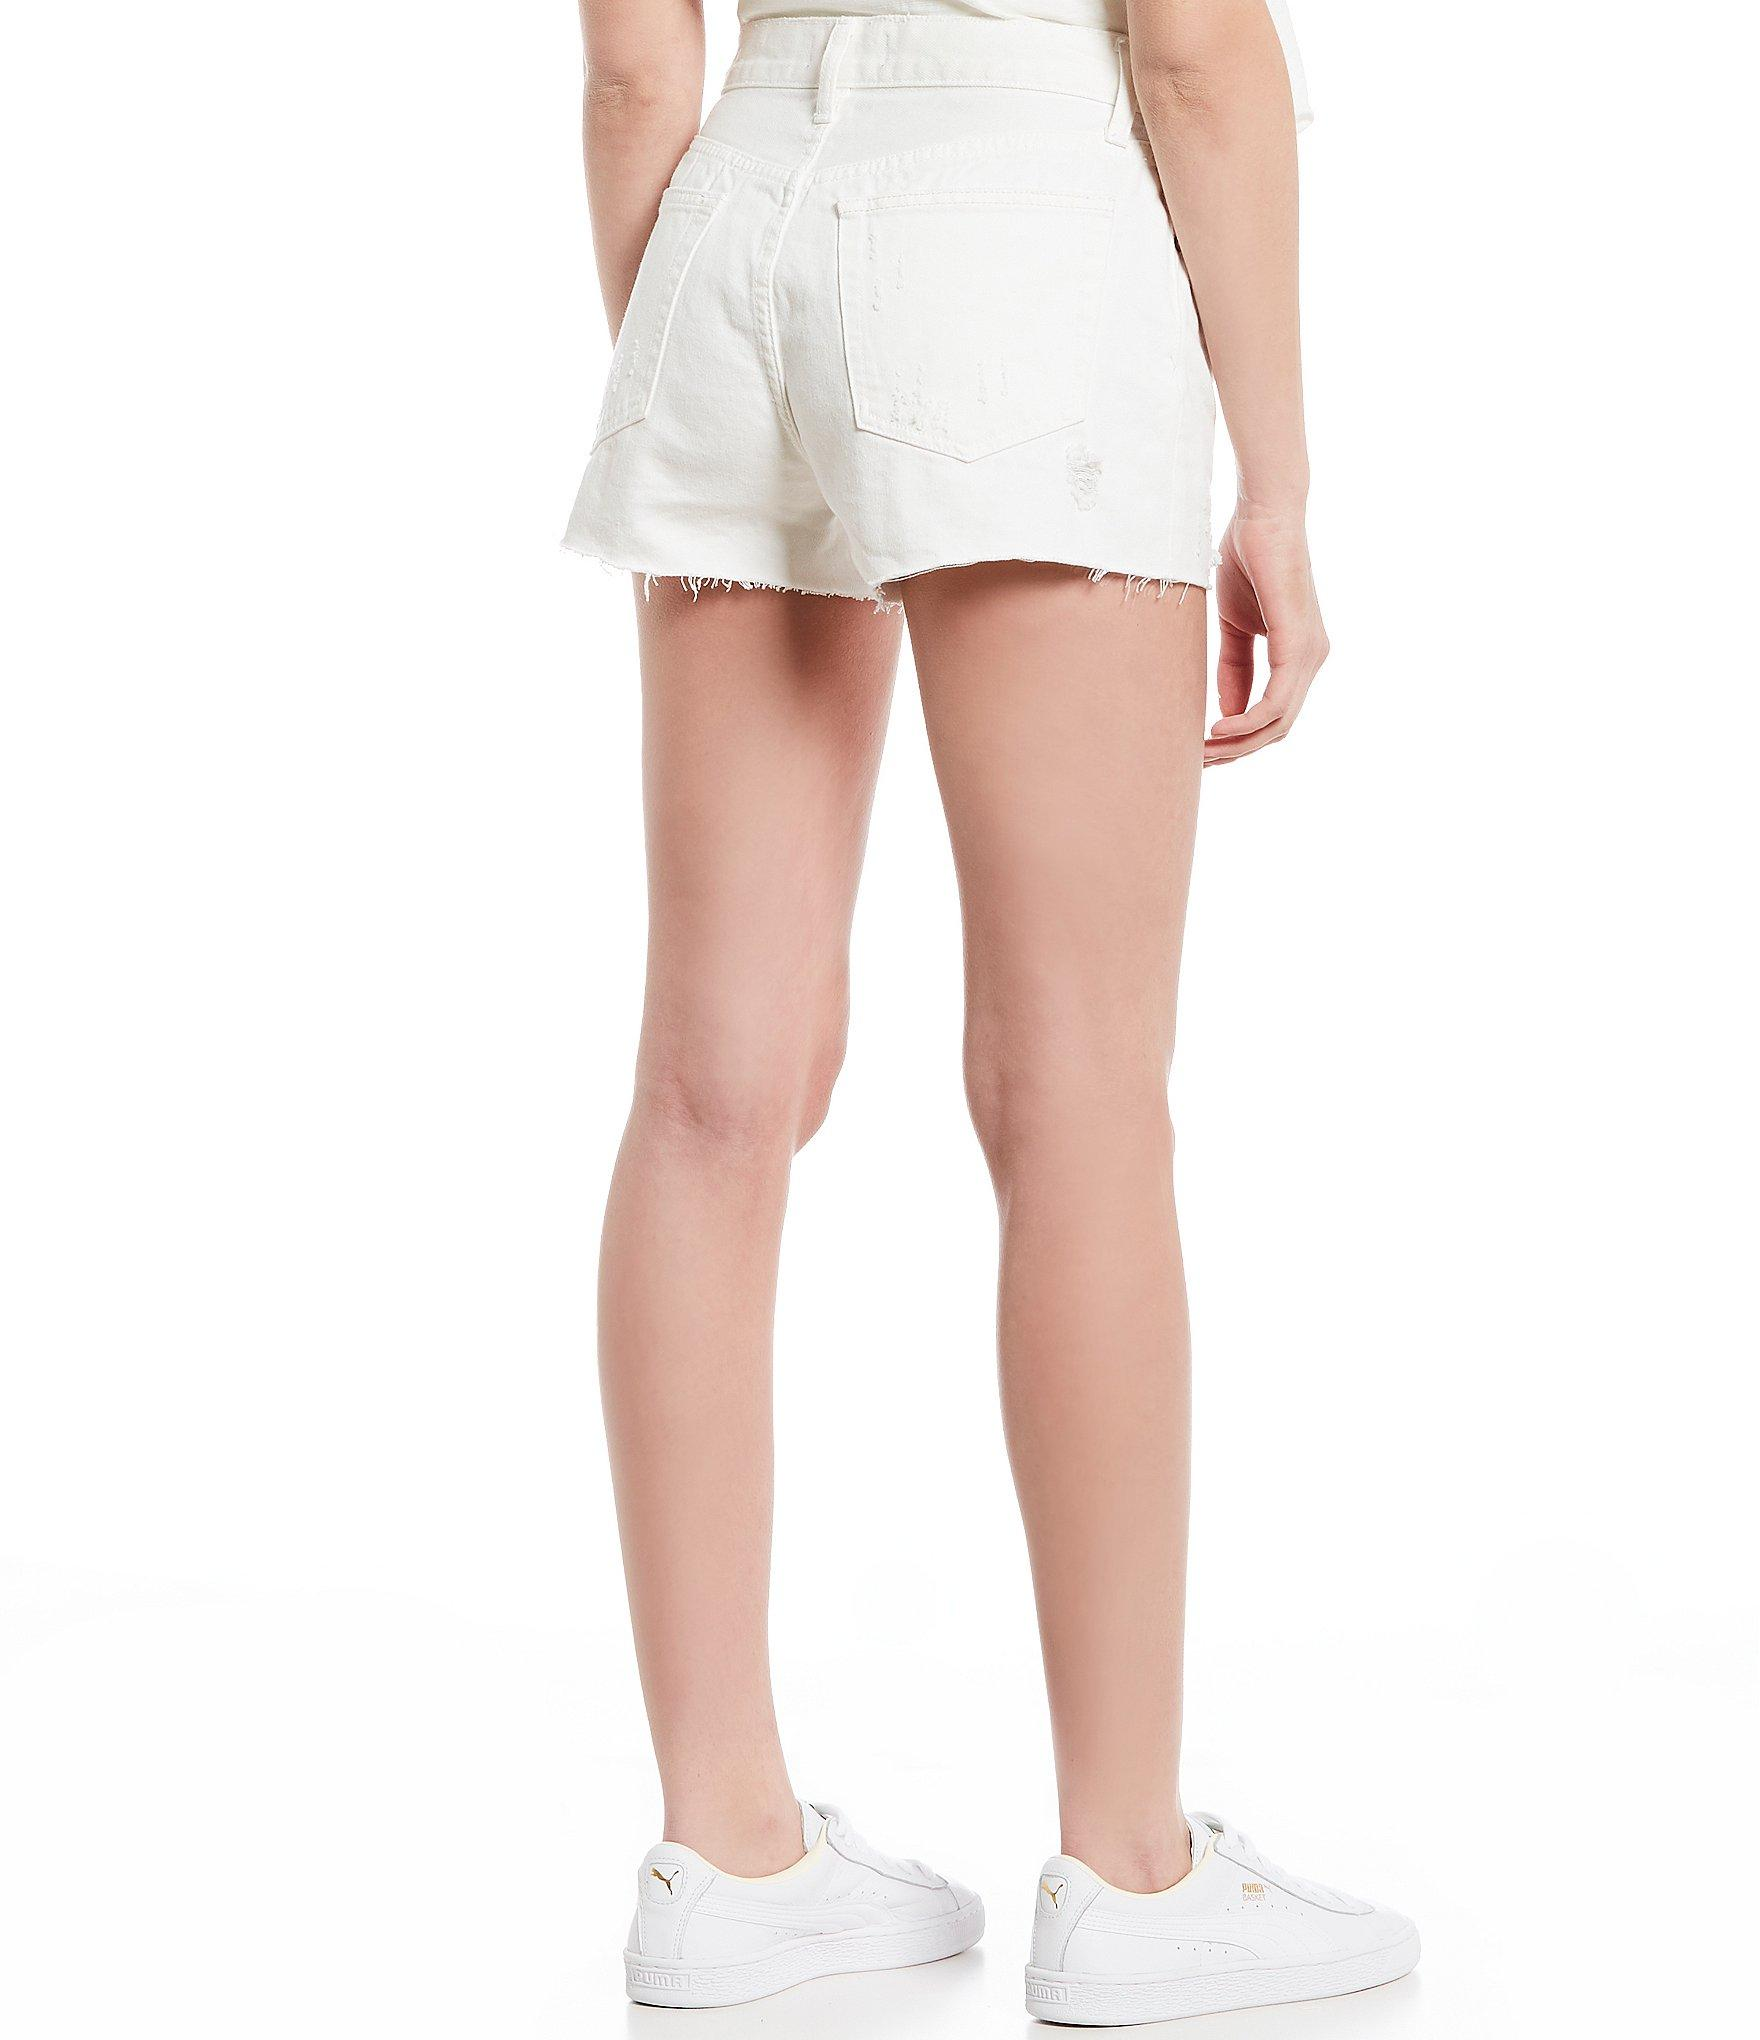 f164f09554 Free People - White Sofia Distressed Denim Shorts - Lyst. View fullscreen